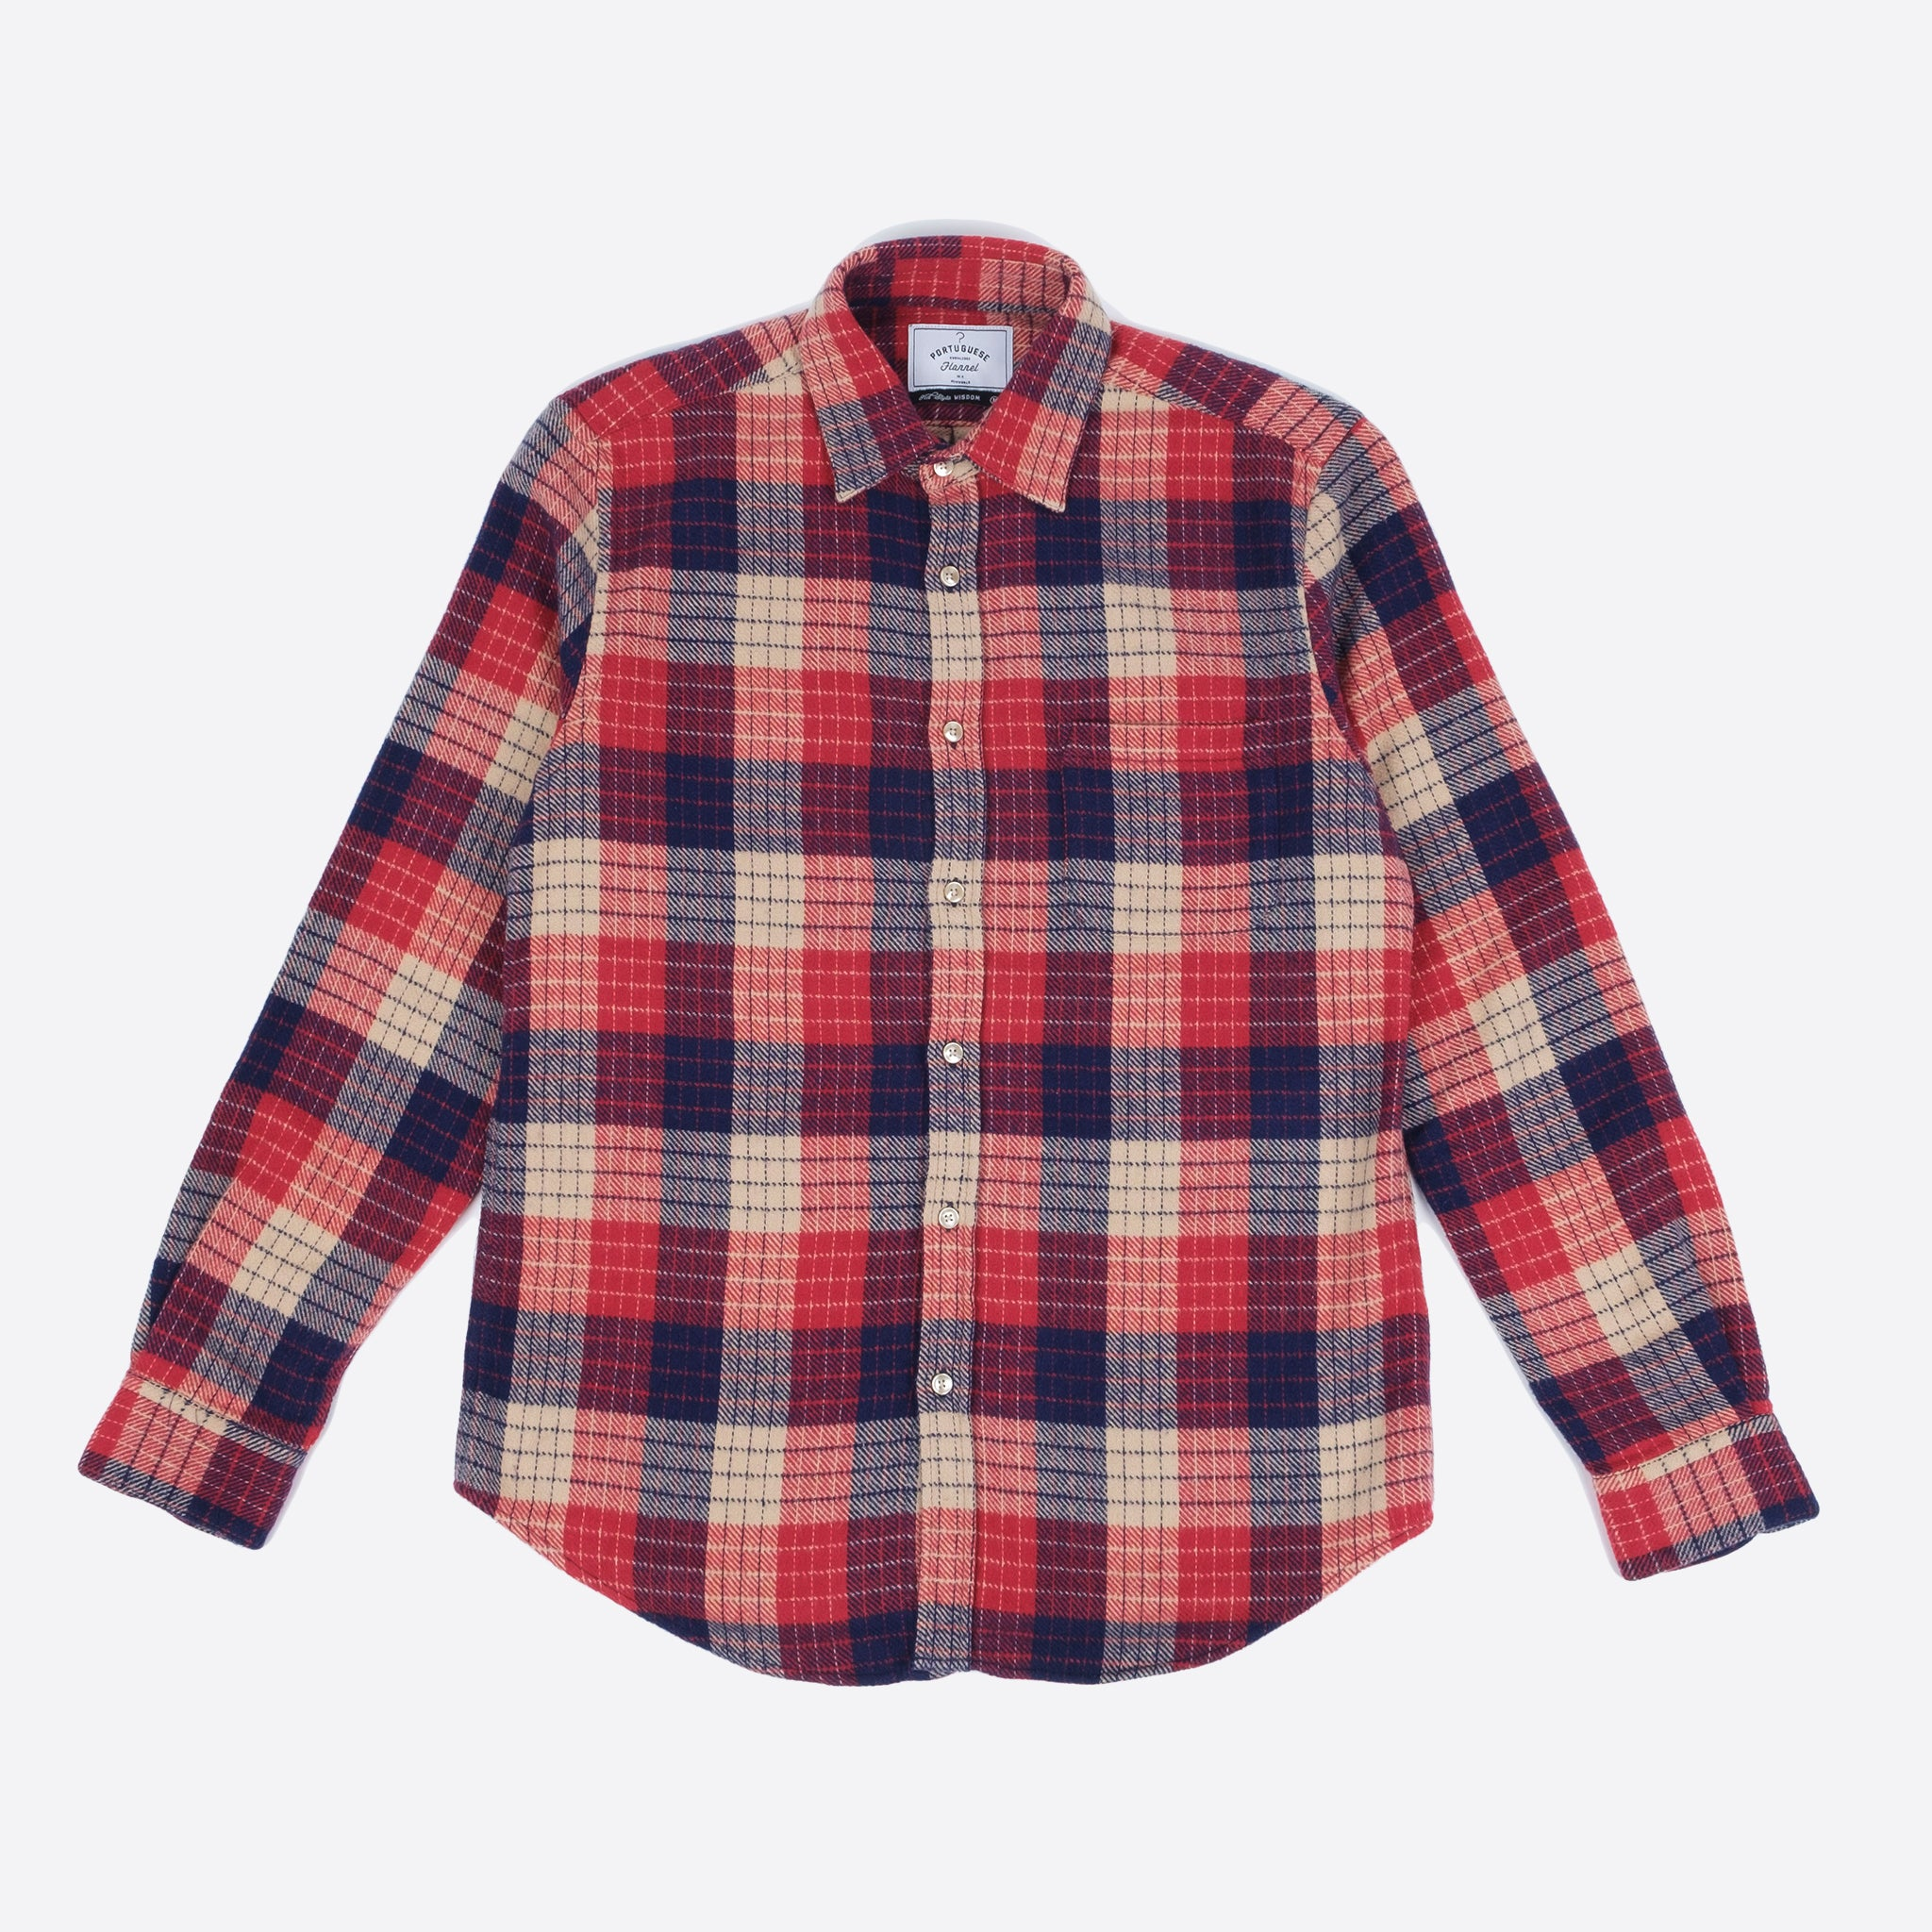 Portuguese Flannel Village Shirt